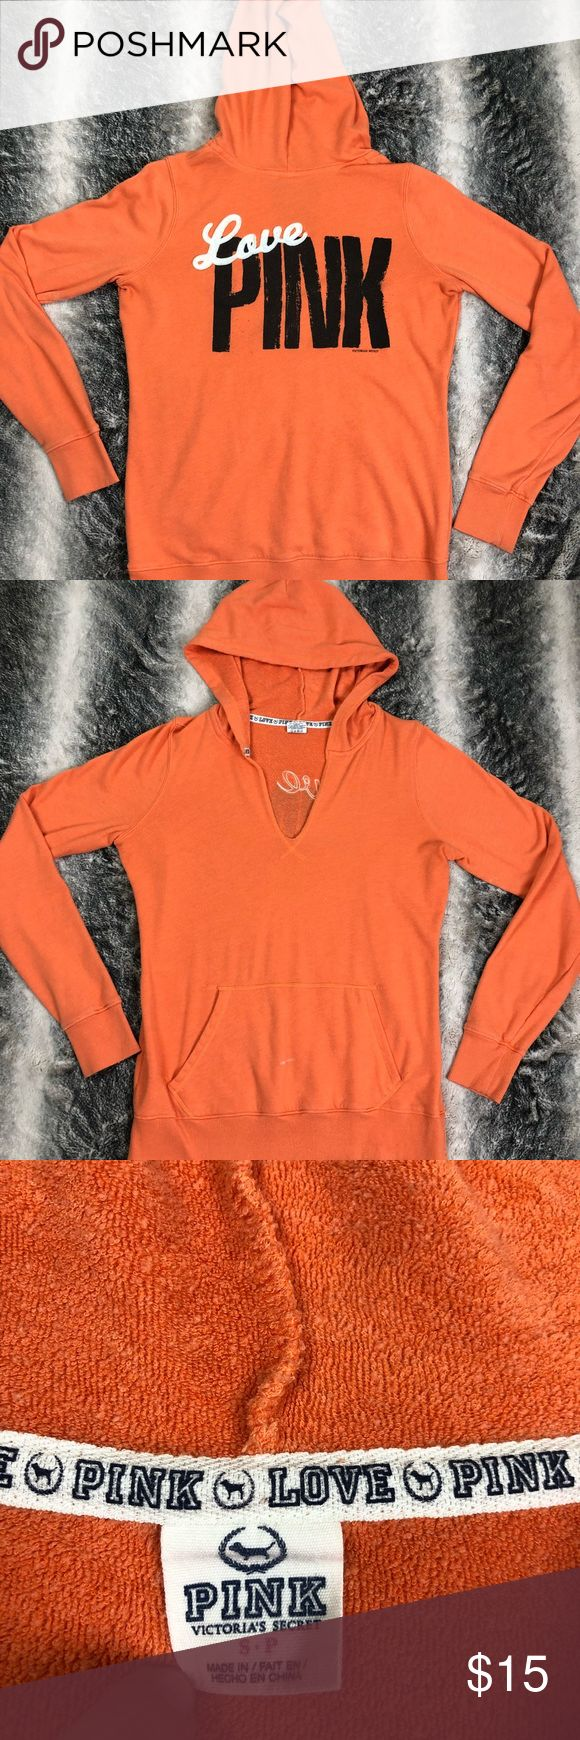 Victoria's Secret PINK pullover sweatshirt PINK pullover orange women's sweatshirt  PINK logo on the back  Small bleach stain on pocket  Made out of polyester and cotton PINK Tops Sweatshirts & Hoodies